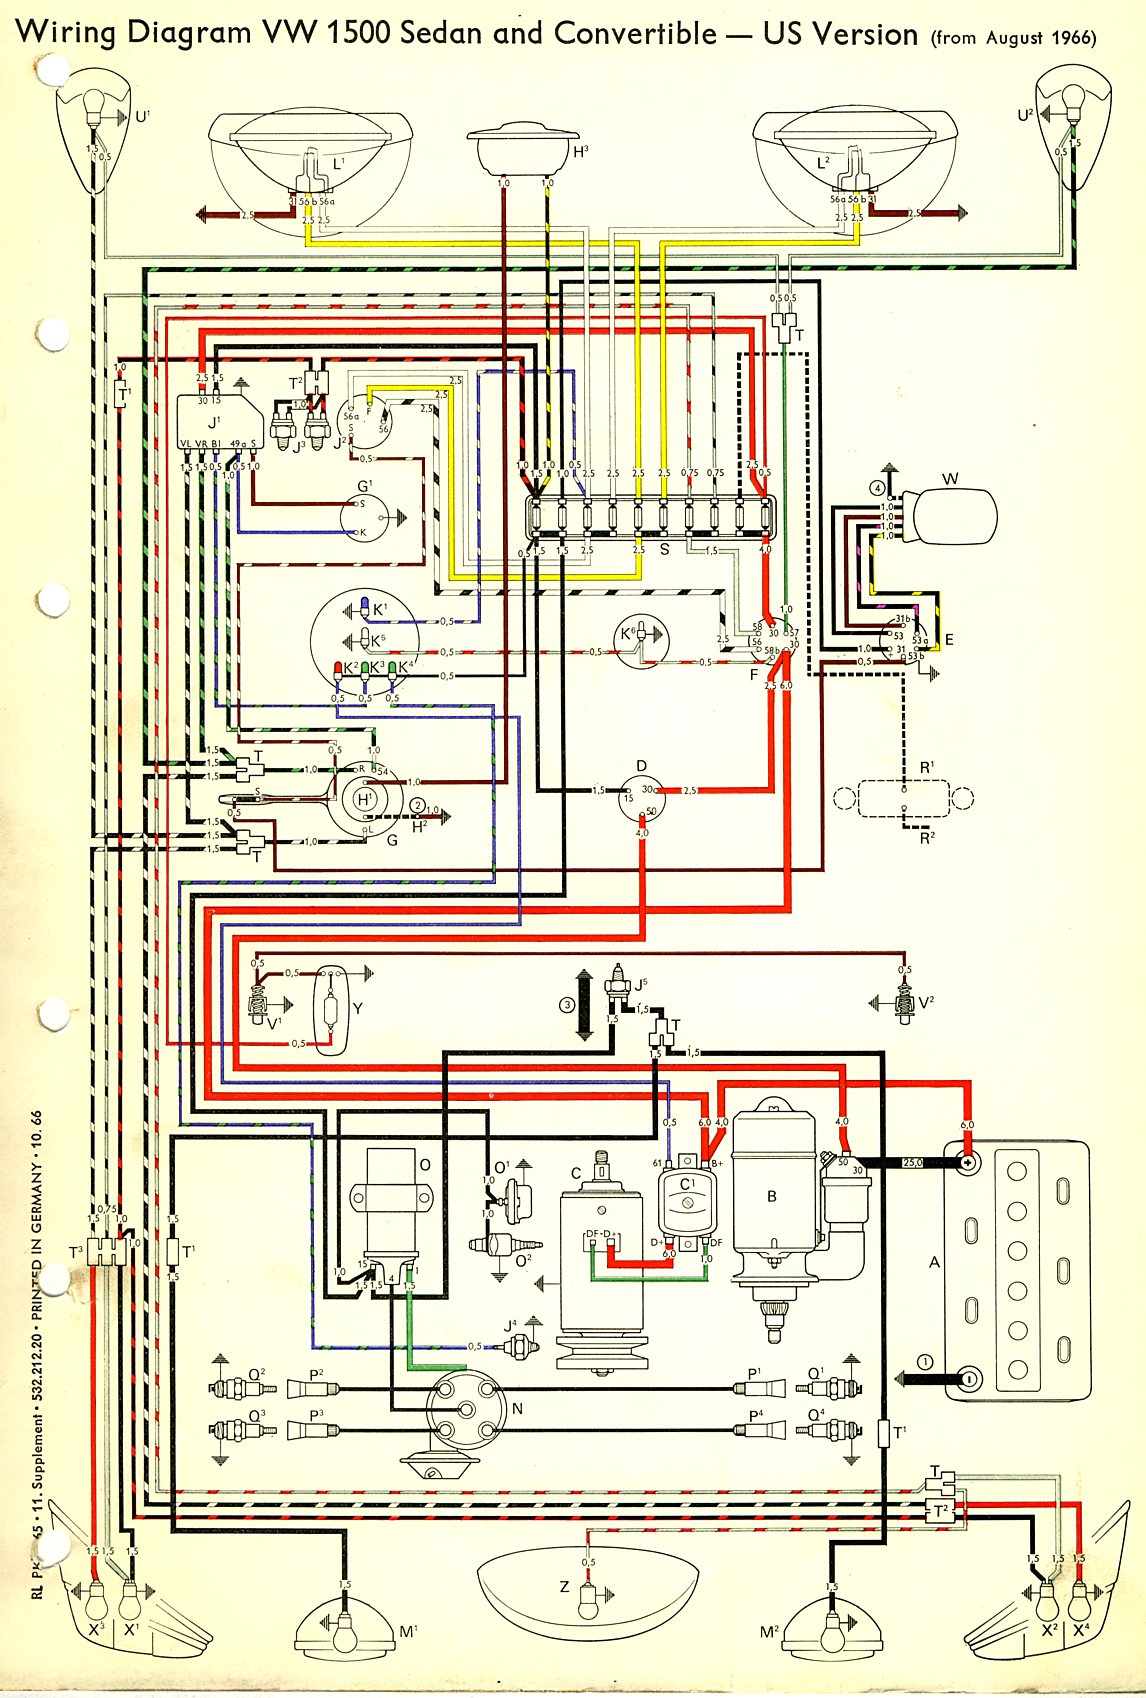 1970 beetle wiring diagram tail light thesamba type 1 diagrams